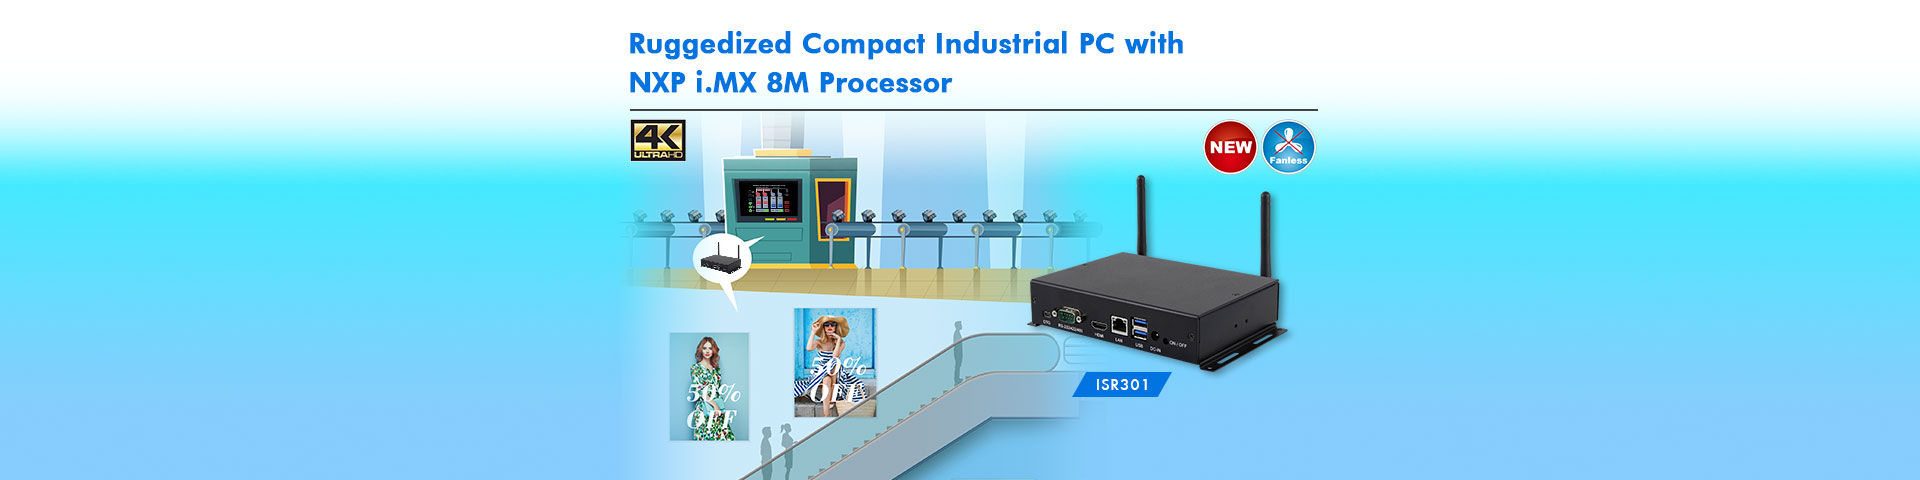 Ruggedized Compact Industrial PC with NXP i.MX 8M Processor